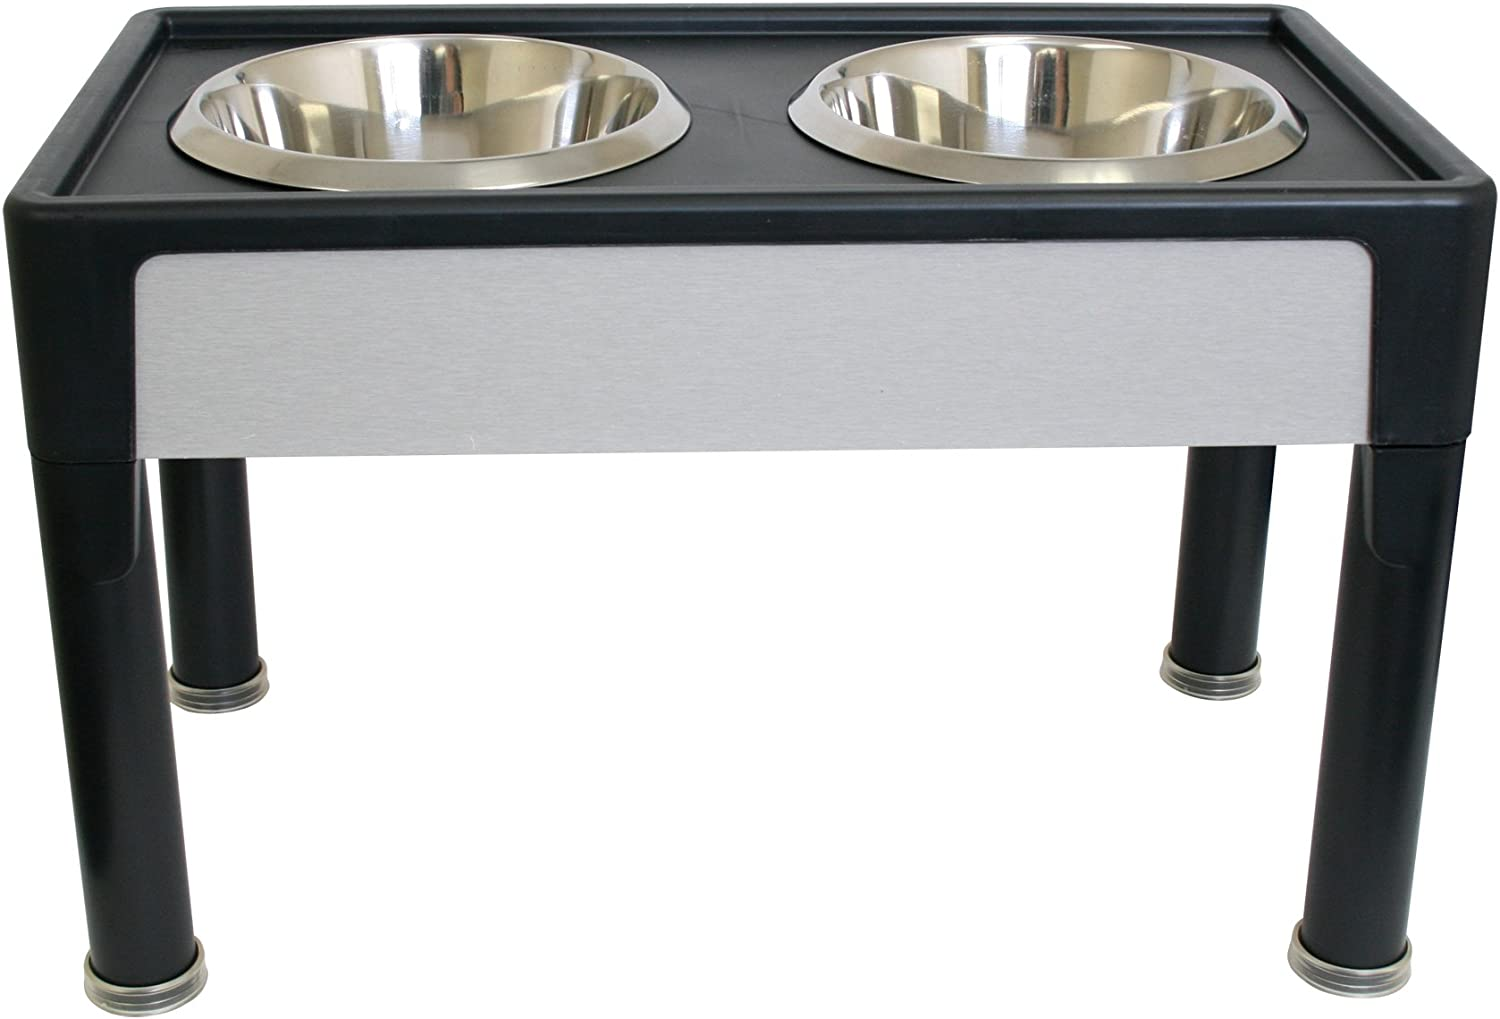 OurPets Signature Series Elevated Dog Feeder 14